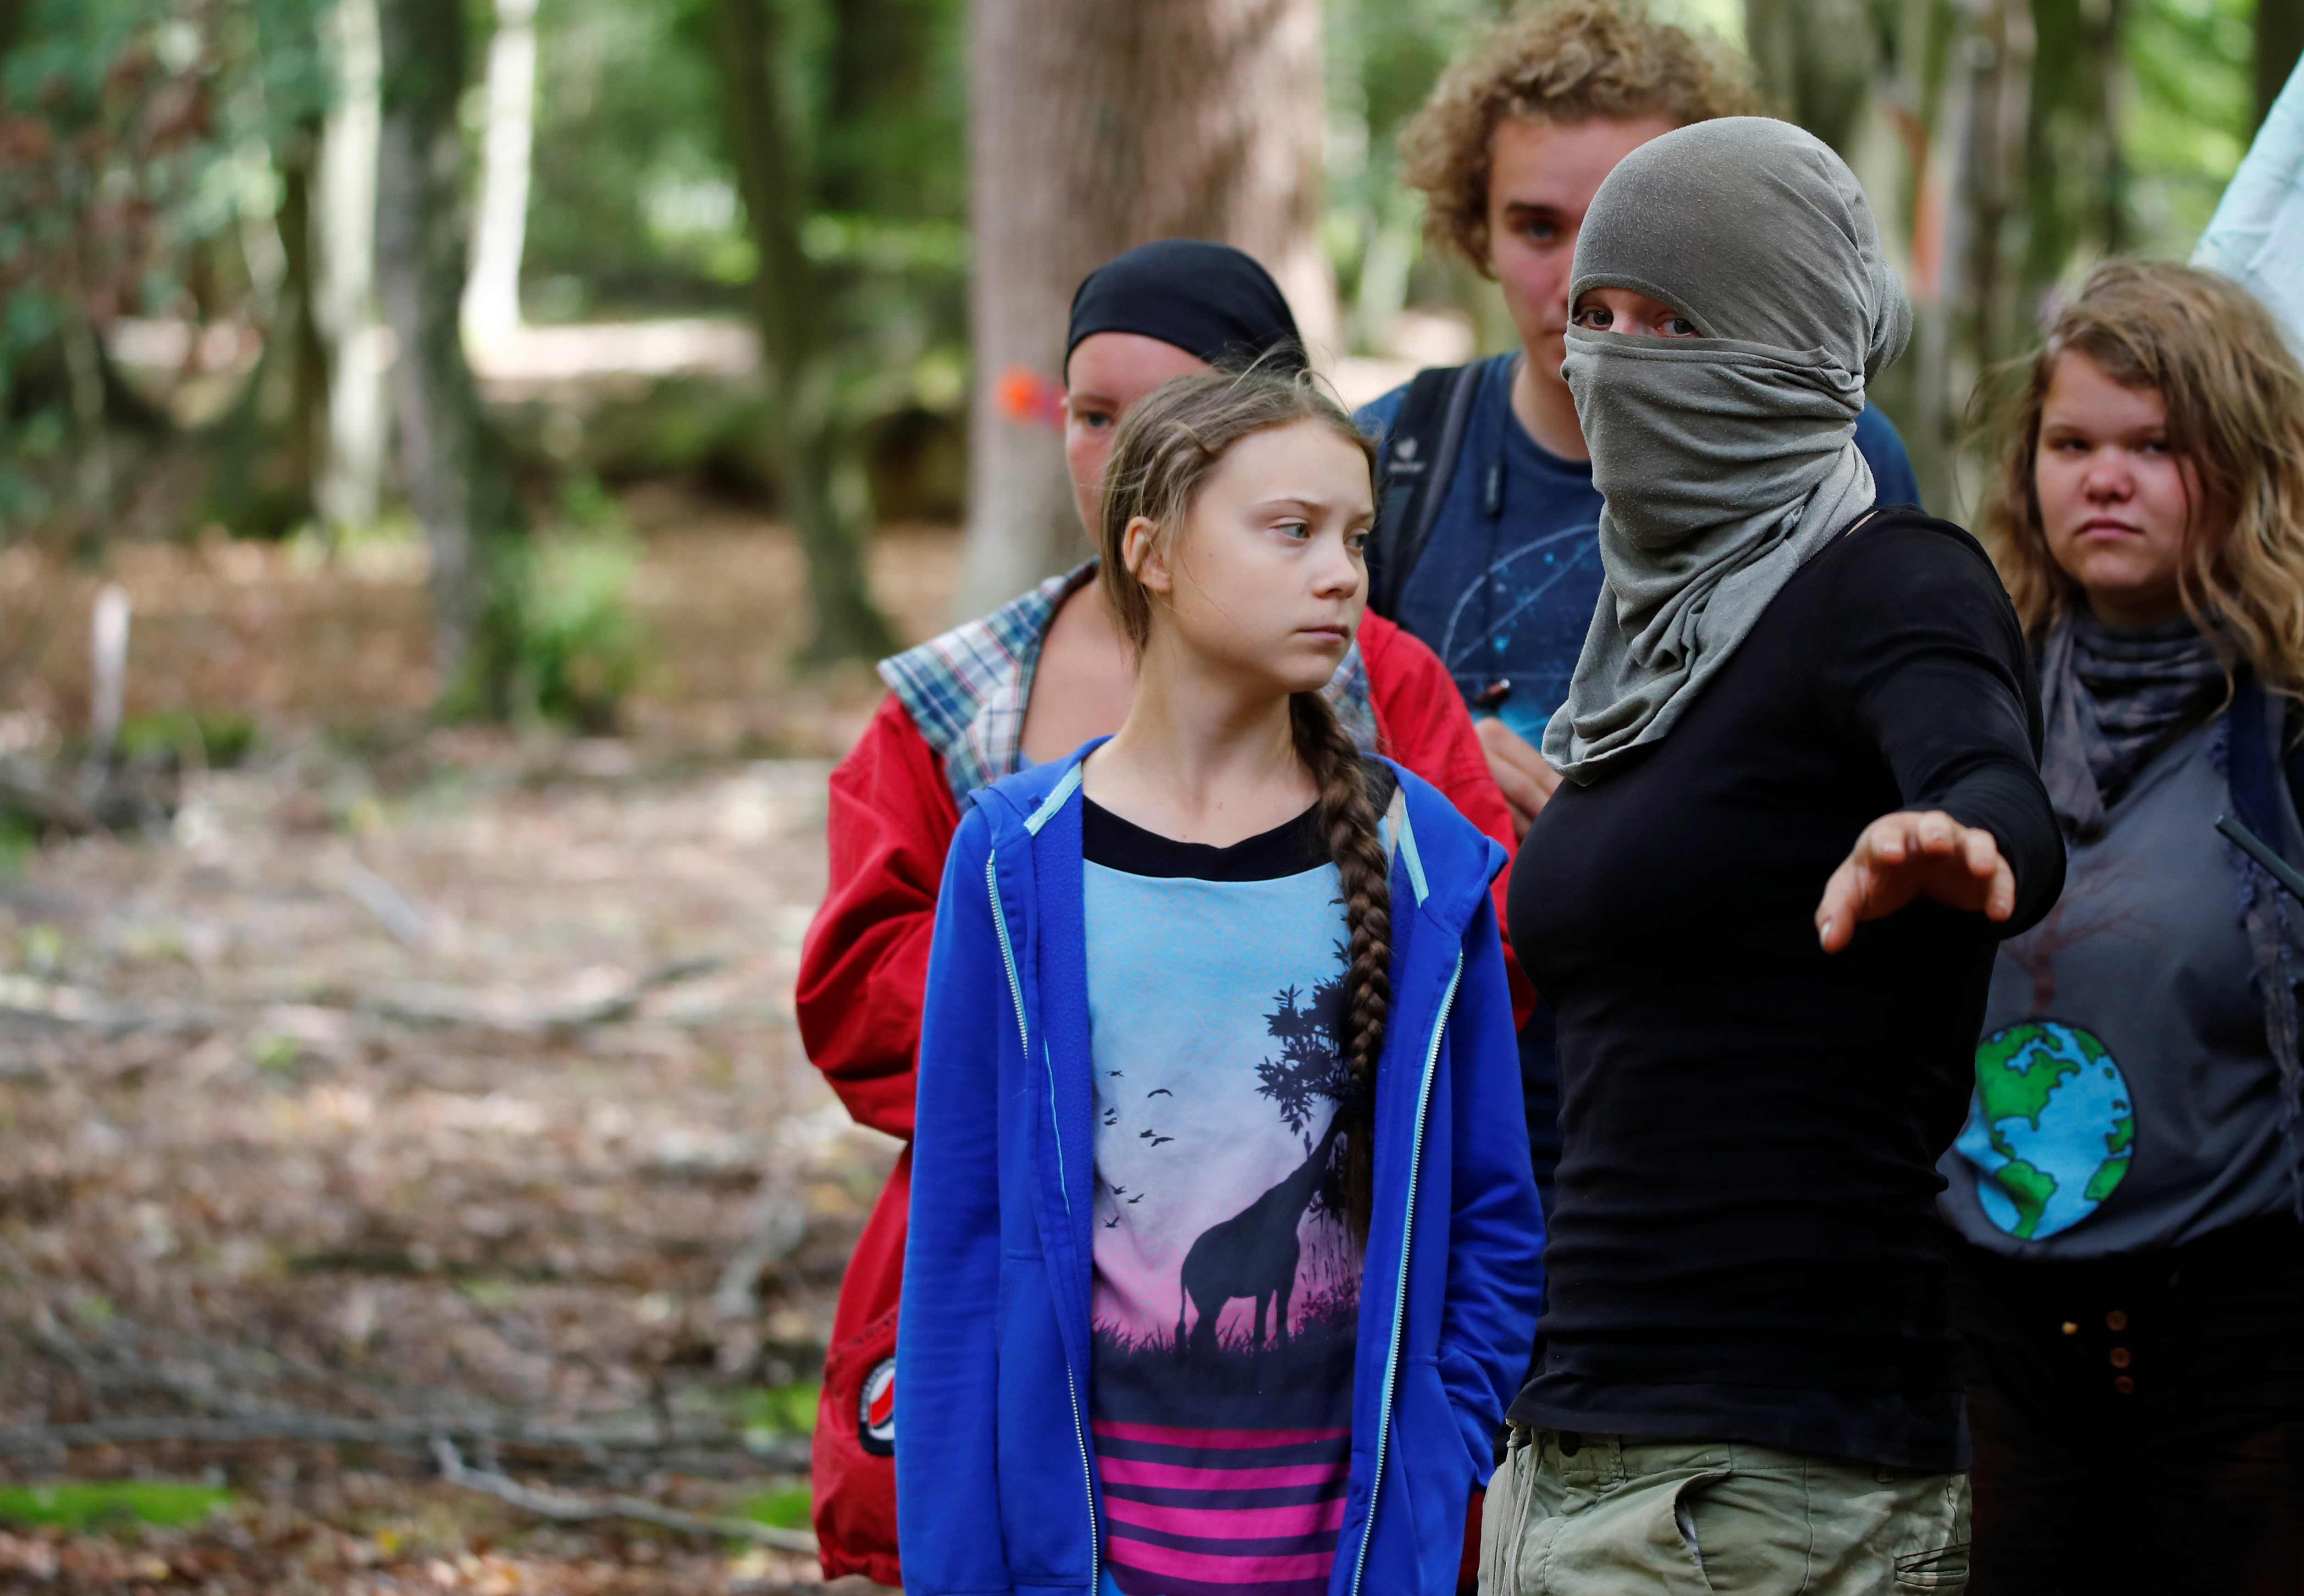 """Greta Thunberg, Swedish """"Fridays for Future"""" climate activist, stands next to activists and a masked inhabitant of an illegal tree house in the Hambach Forest that is supposed to be chopped away for the nearby open-cast brown coal minr of German utility RWE, west of Cologne, Germany, August 10, 2019. REUTERS/Wolfgang Rattay"""